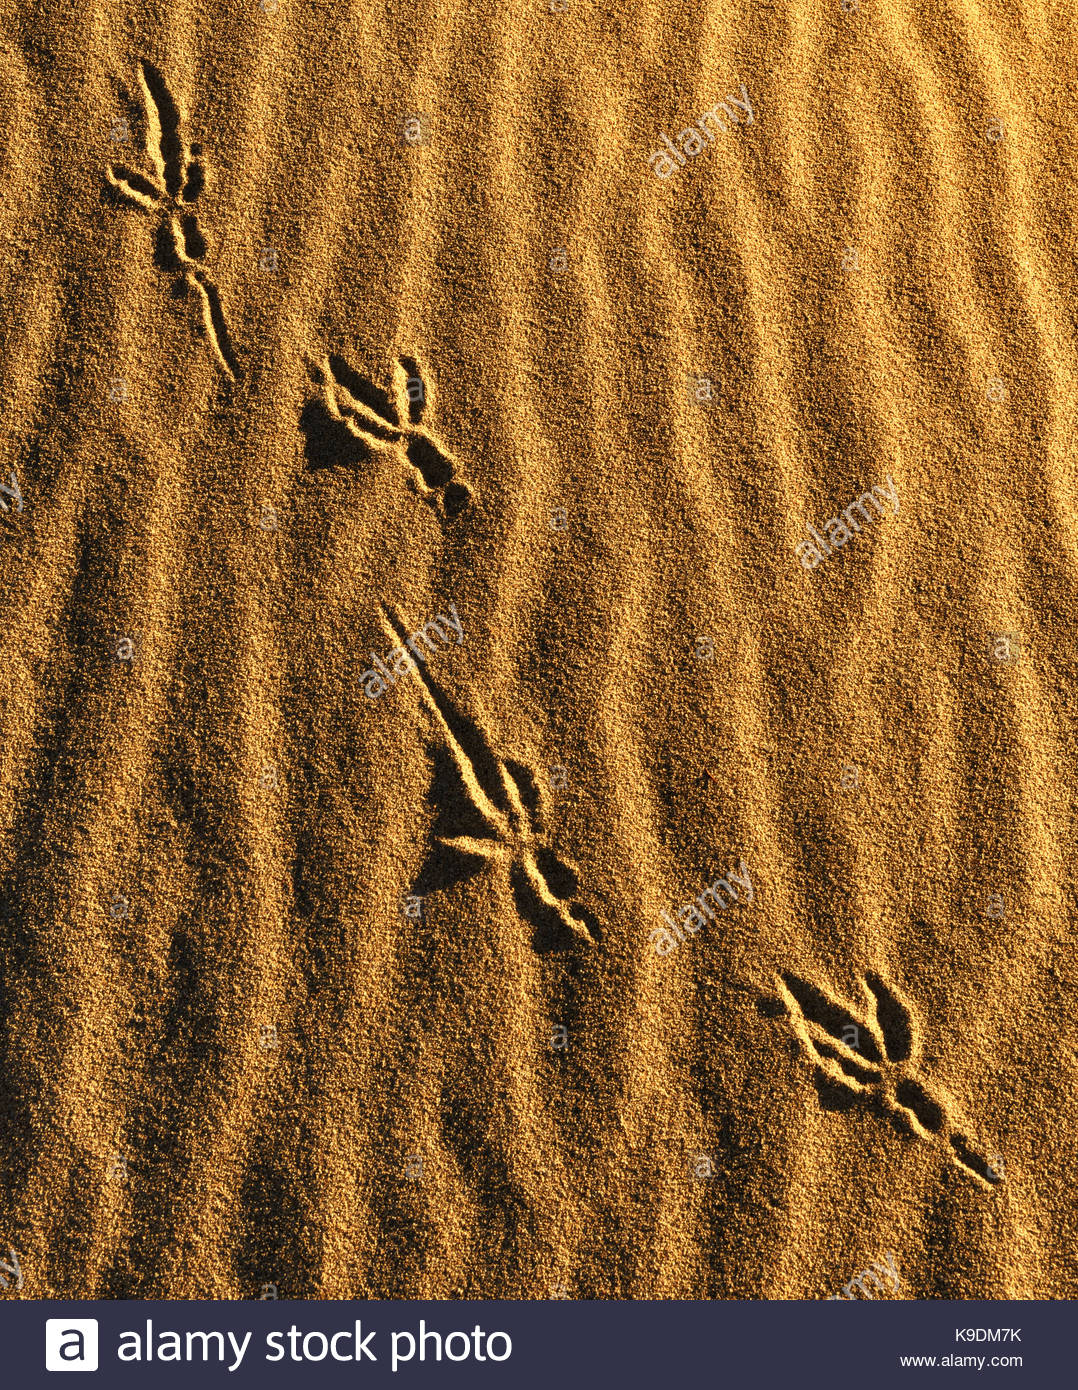 Raven Tracks on Sand Dune, Death Valley National Park, California - Stock Image